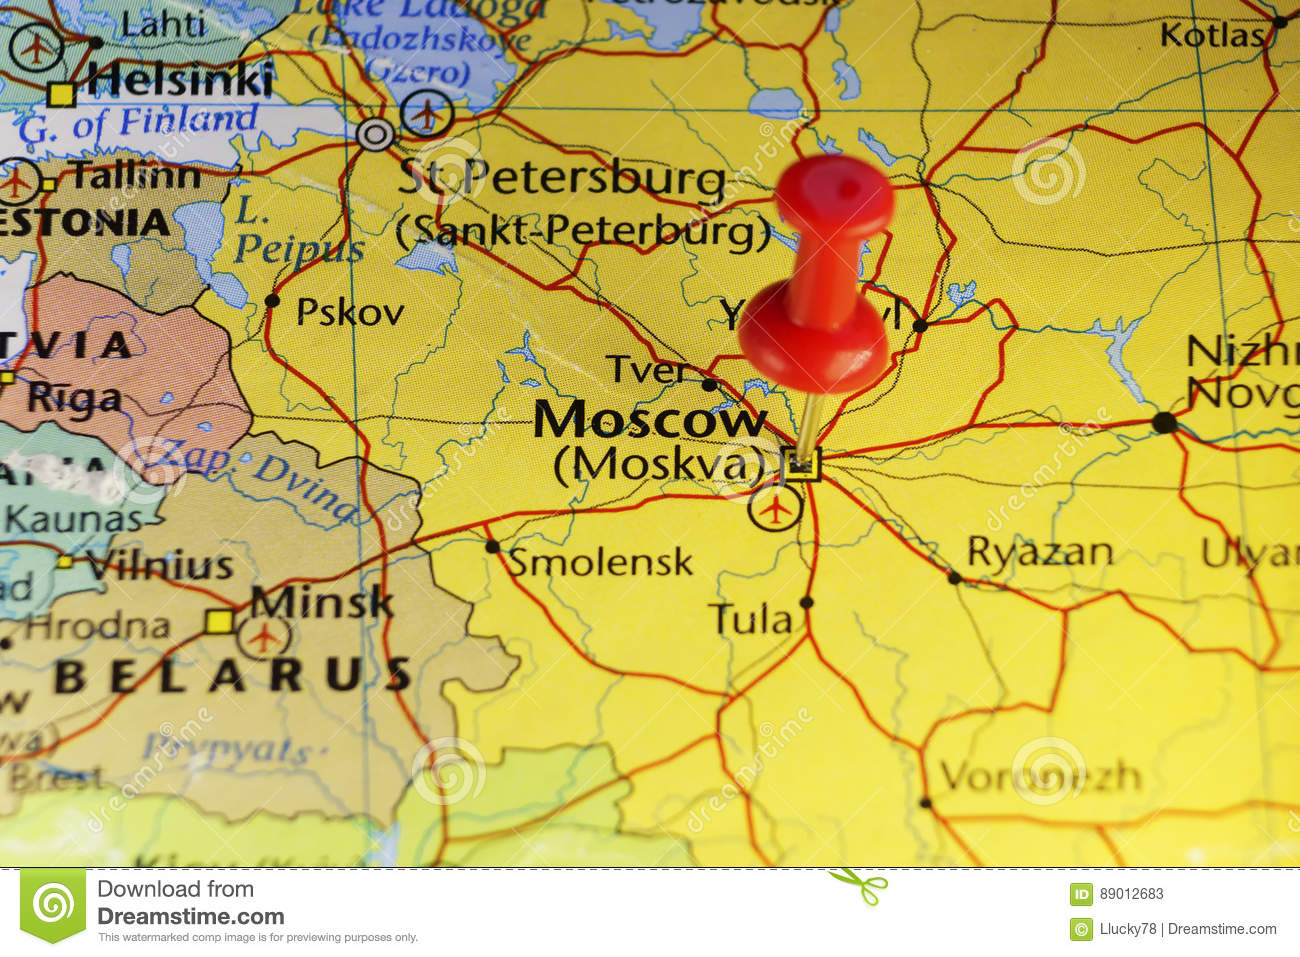 Moscow Russia pinned map stock illustration. Illustration of copy ...